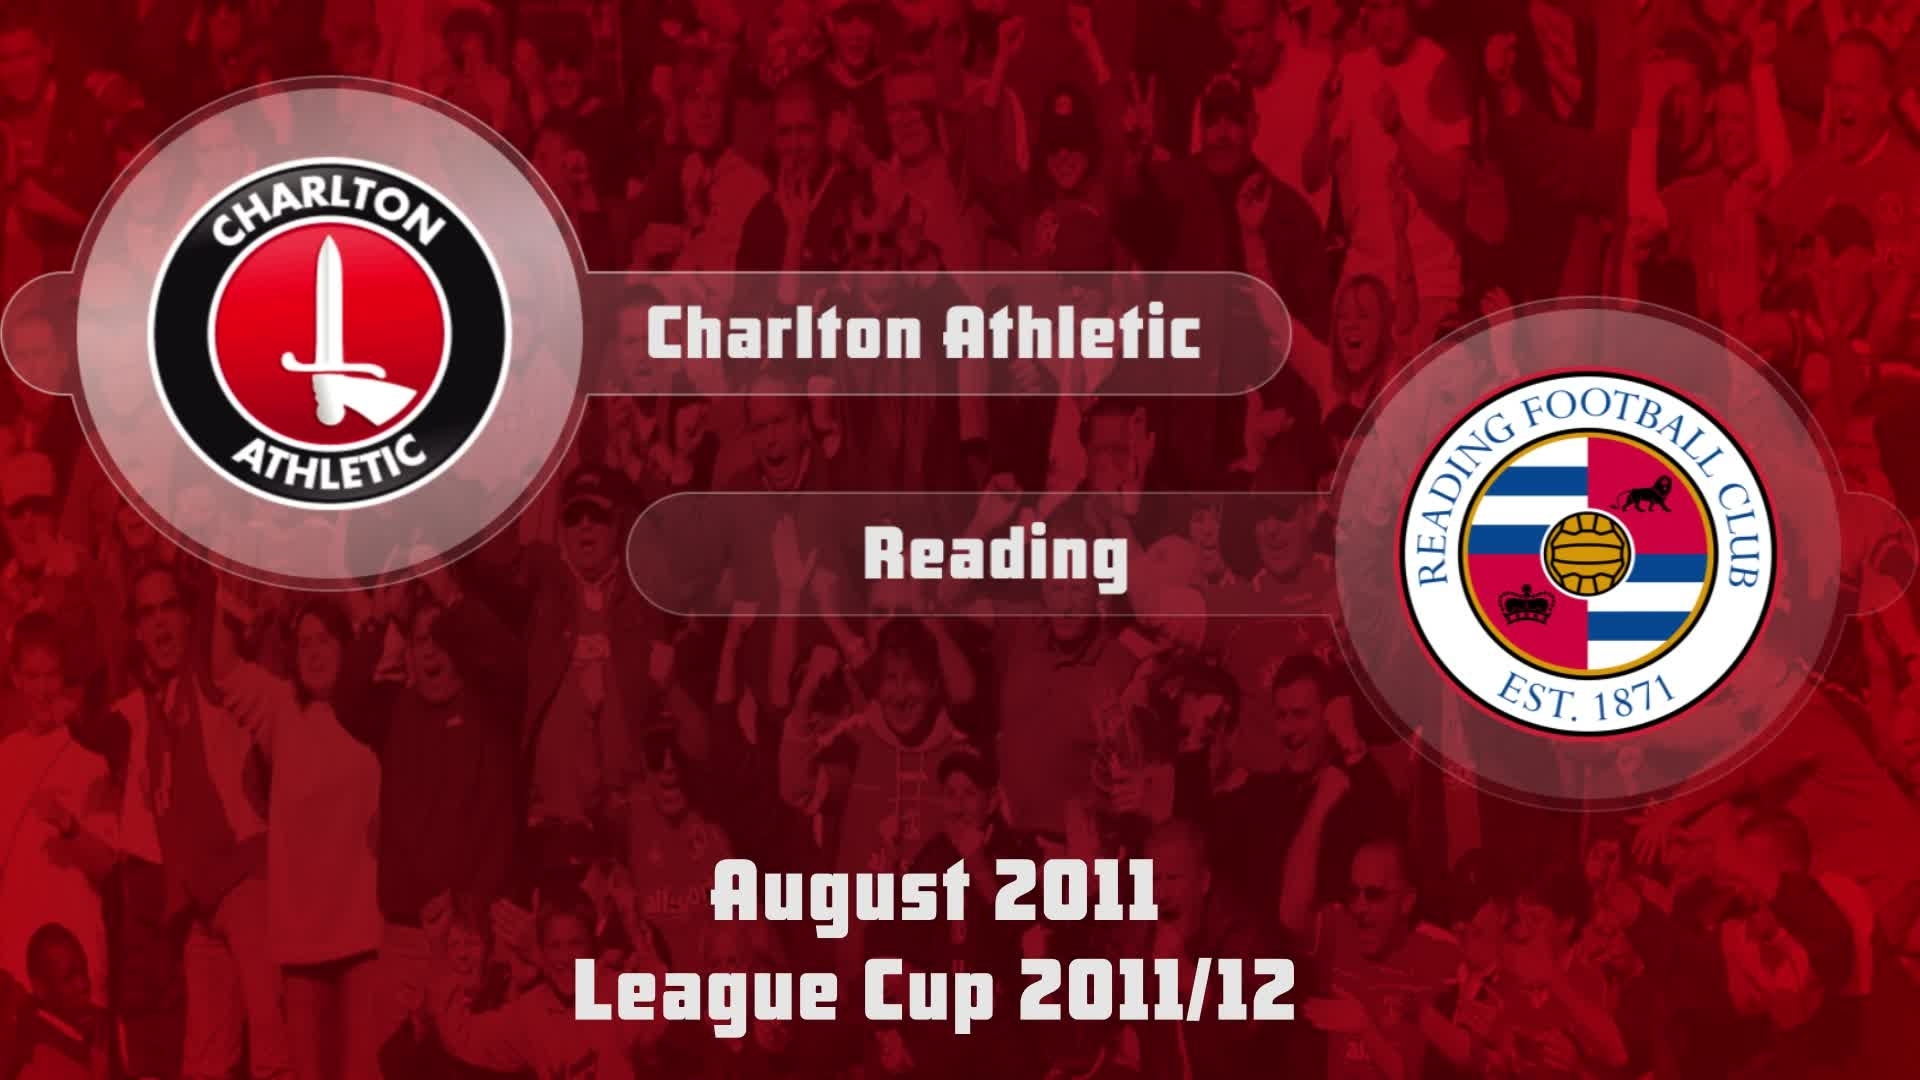 05 HIGHLIGHTS   Charlton 2 Reading 1 (League Cup Aug 2011)